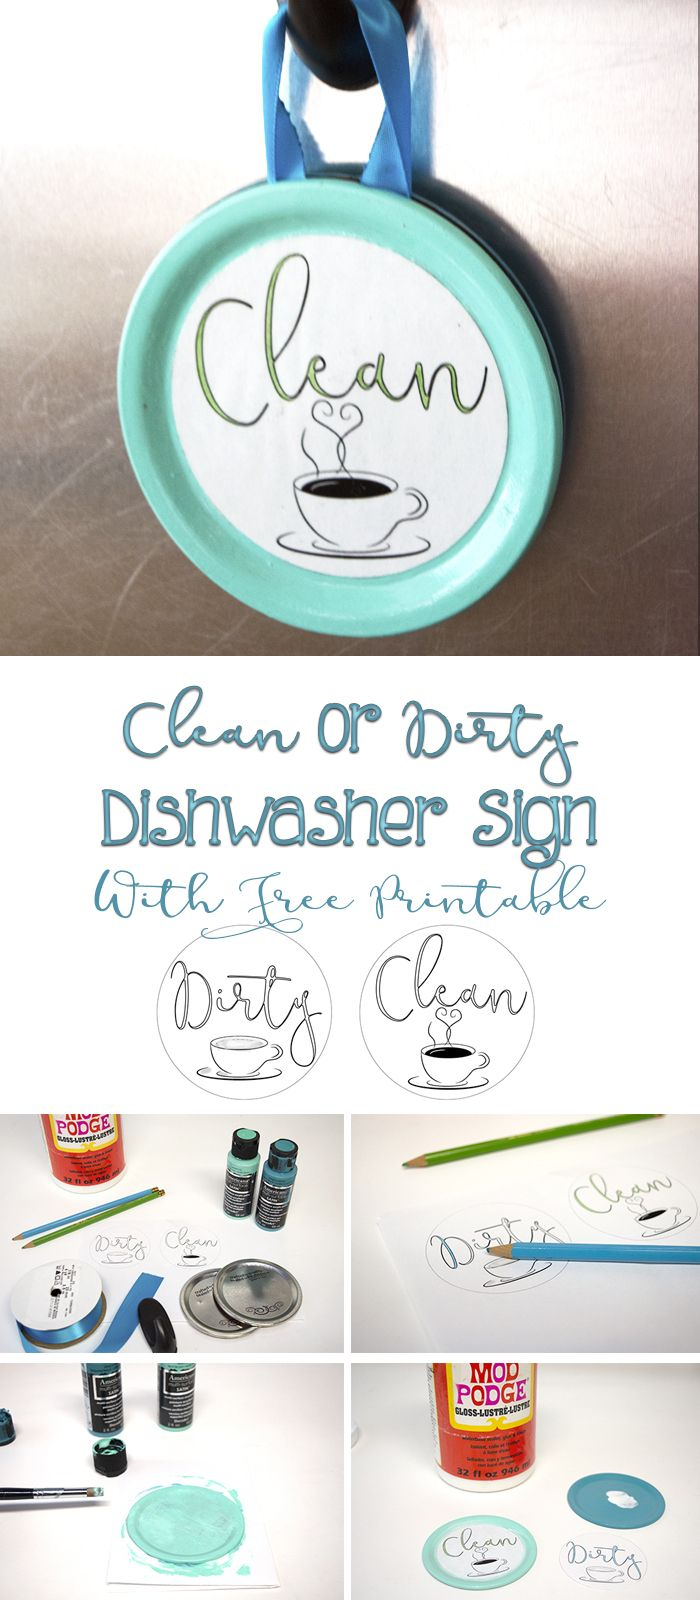 Easy Clean Or Dirty Dishwasher Sign With Free Printable | Diy From - Free Printable Clean Dirty Dishwasher Sign